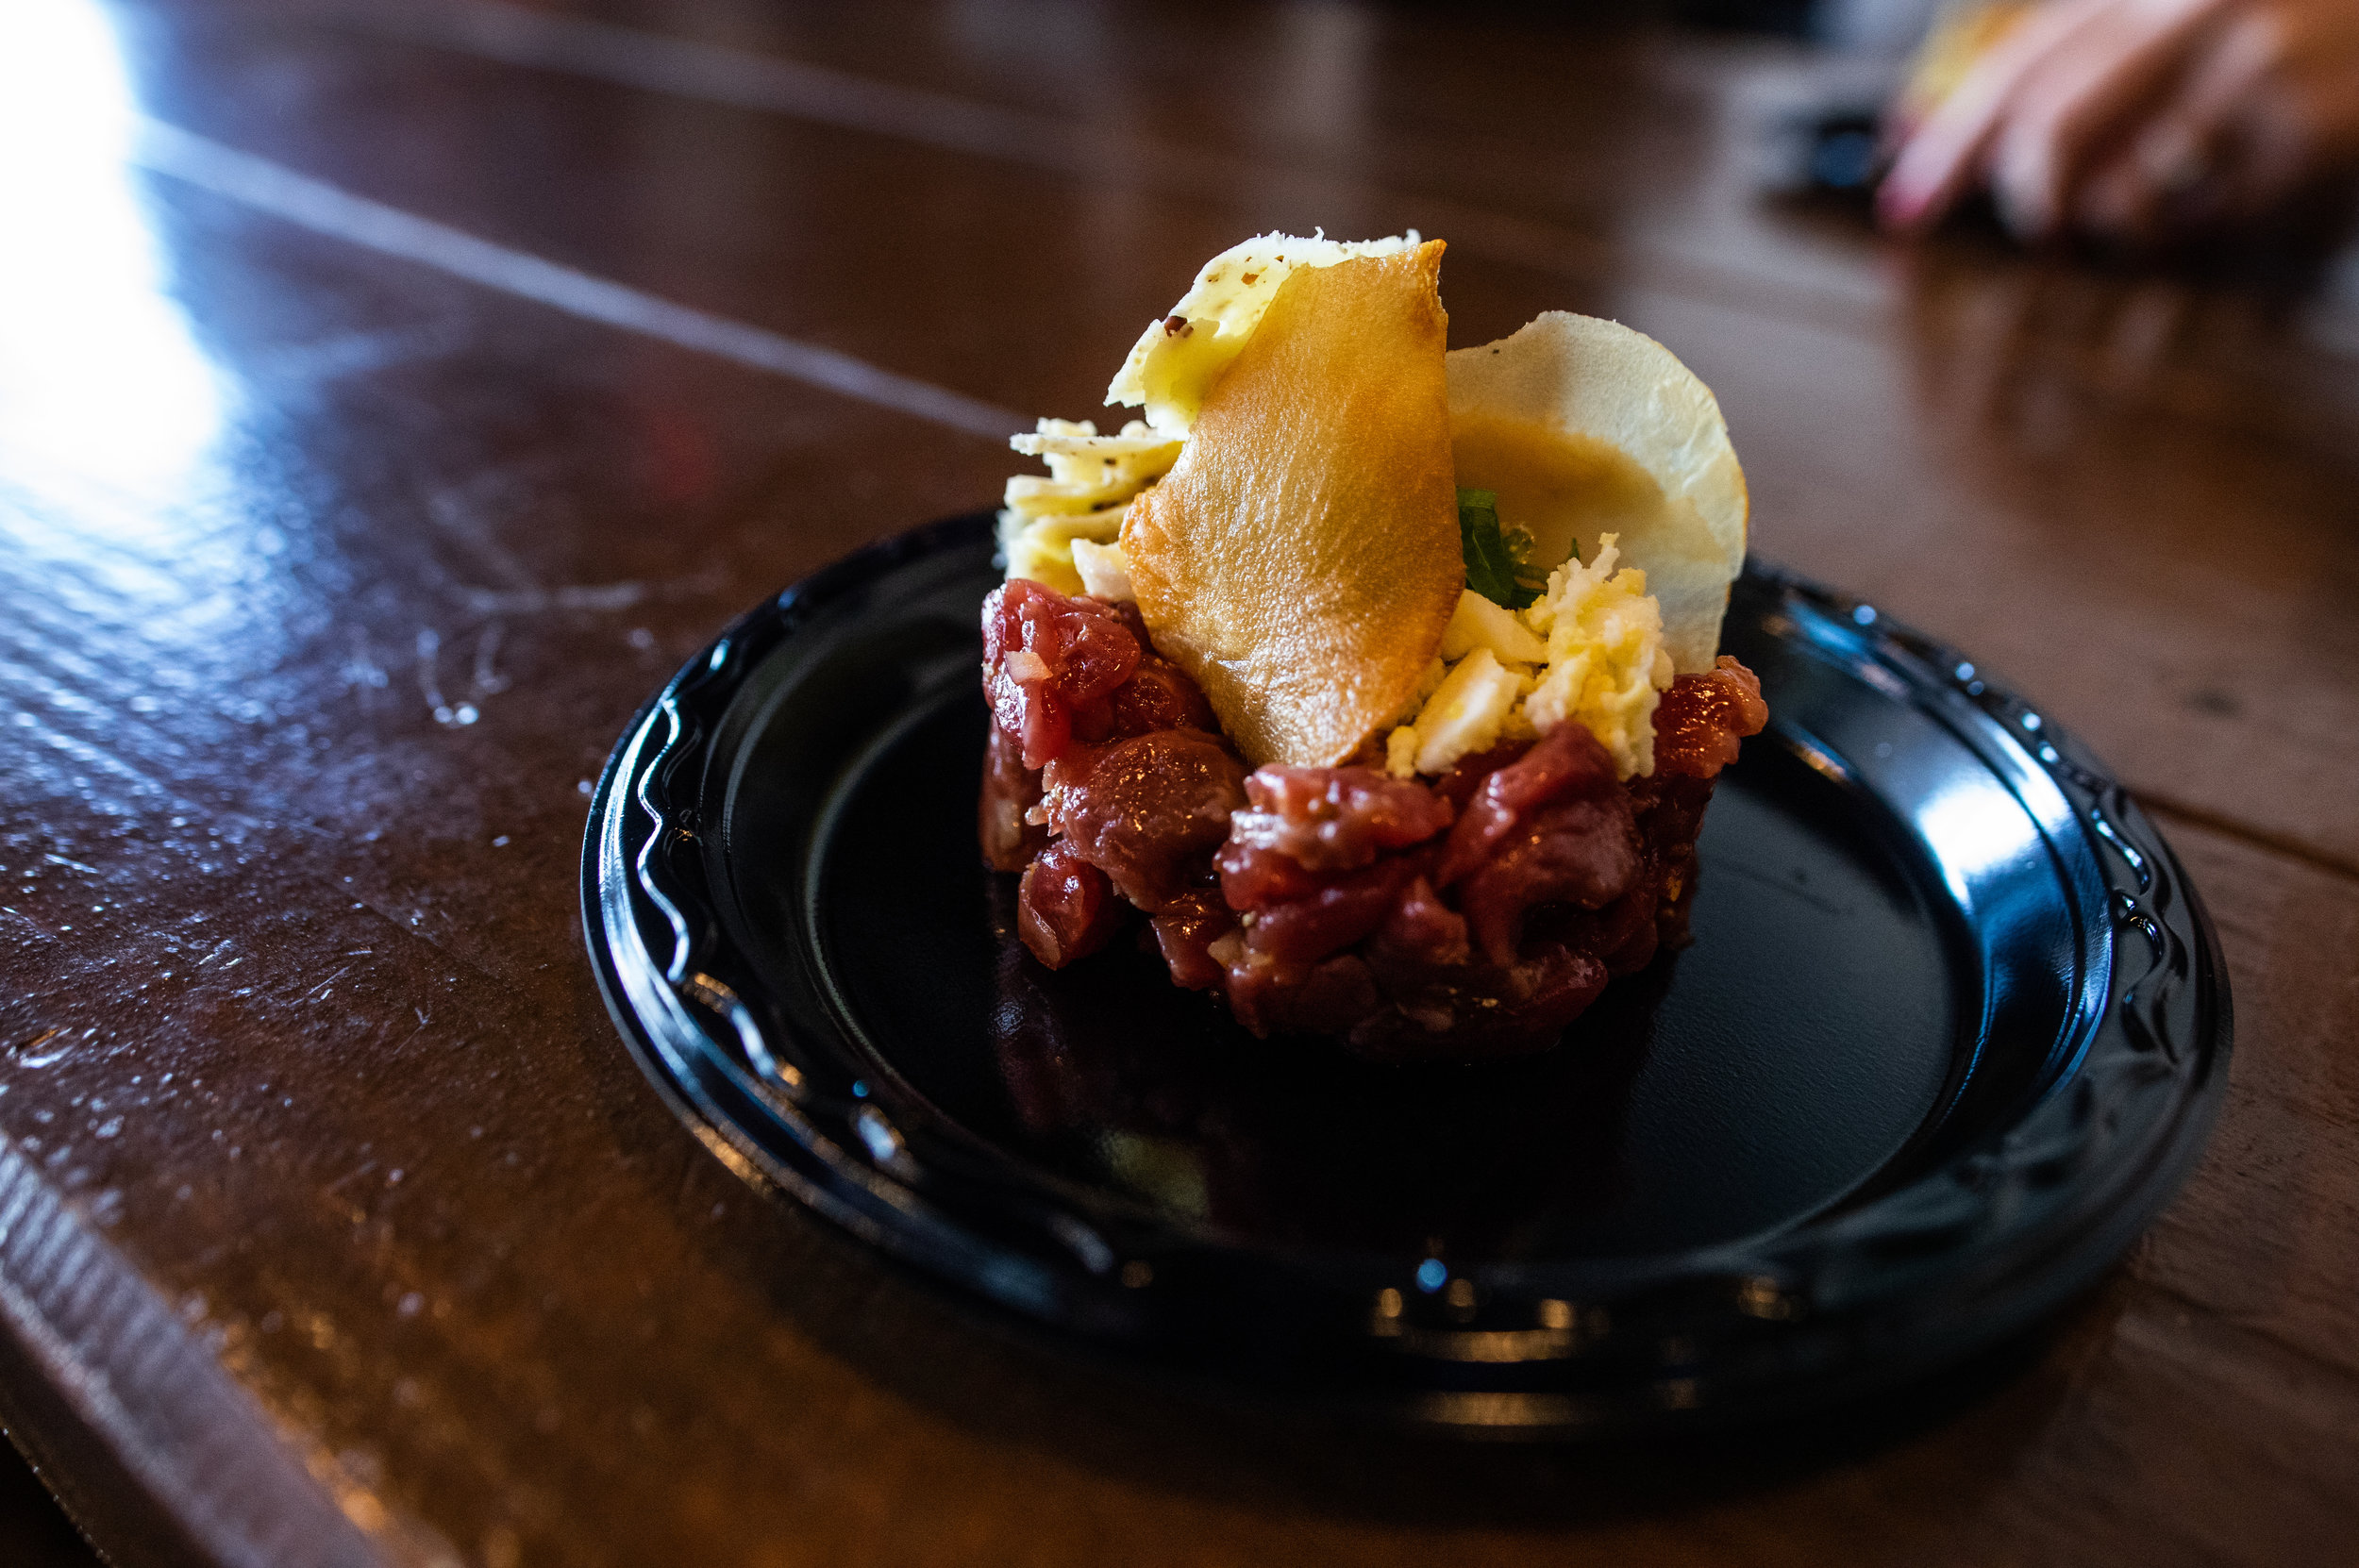 The first course - Beef Tartar with Herbs and Boiled Egg paired with Red Dragon Cheese. - Photo by Garrett Smith